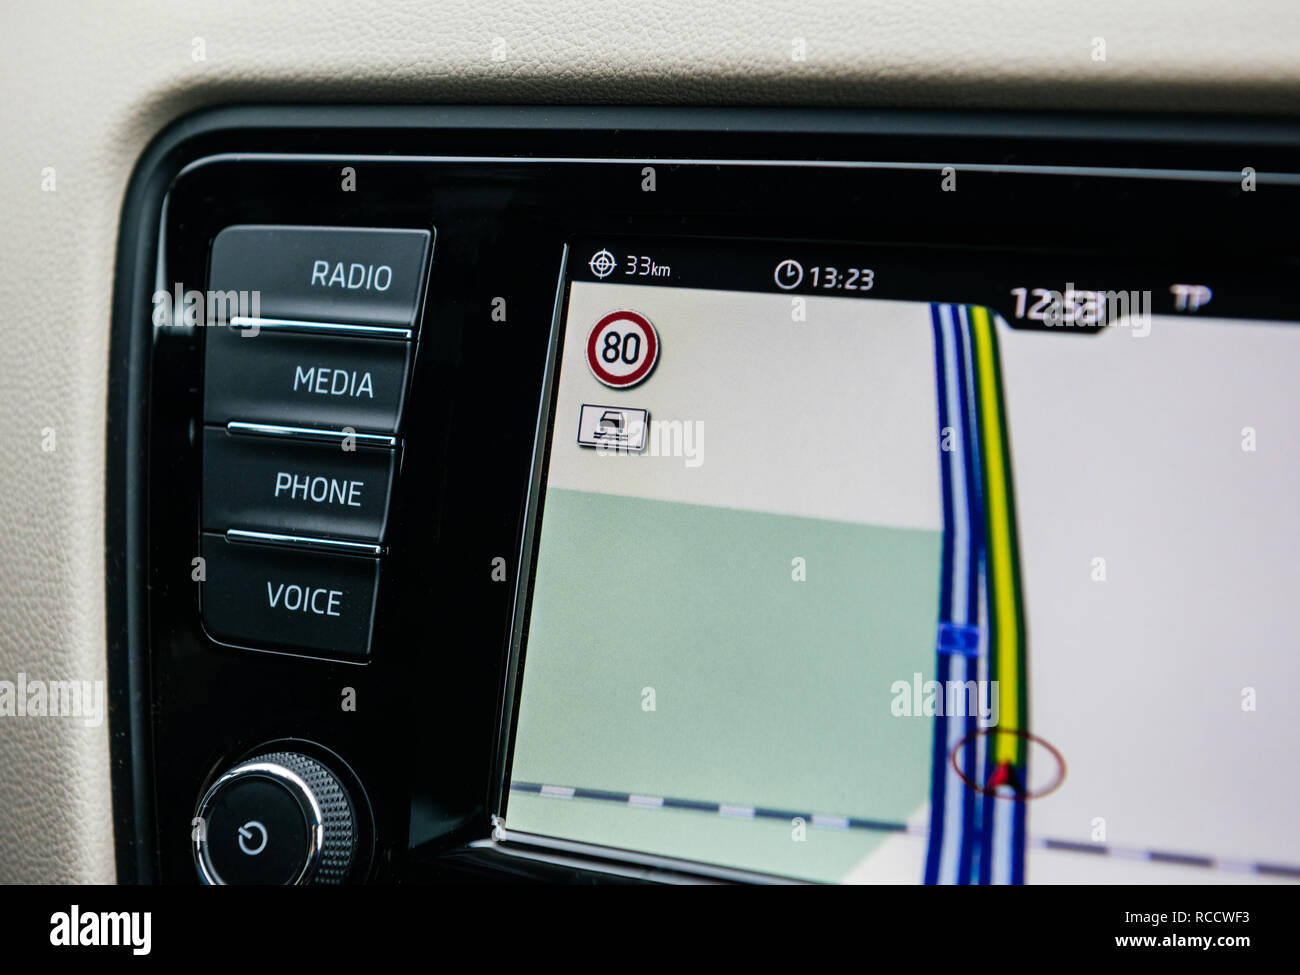 FRANKFURT, GERMANY - FEB 2, 2018: Car GPS infotainment display system showing lanes speed limit to 80KMH and wet road sign of a German autobahn on the digital map Stock Photo